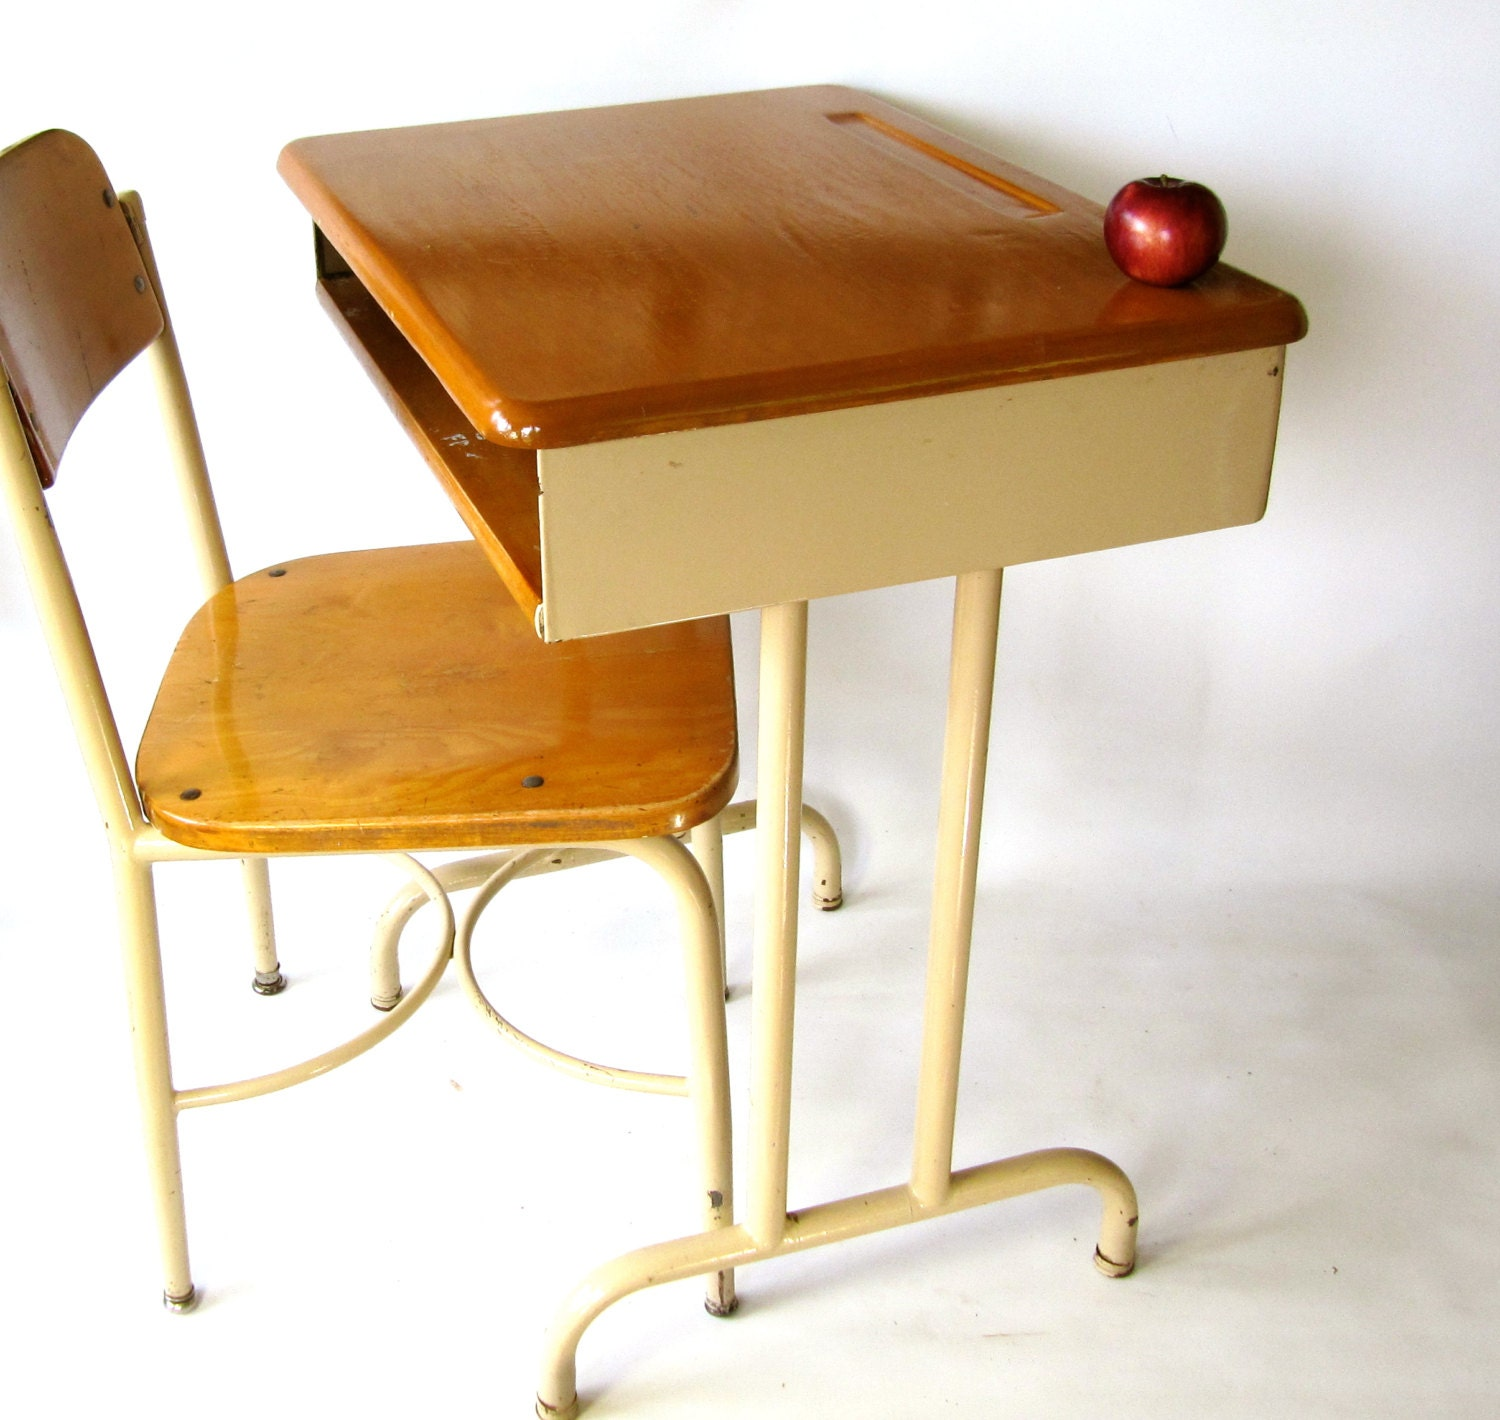 Vintage School Desk Solid Wood Top Adult Size